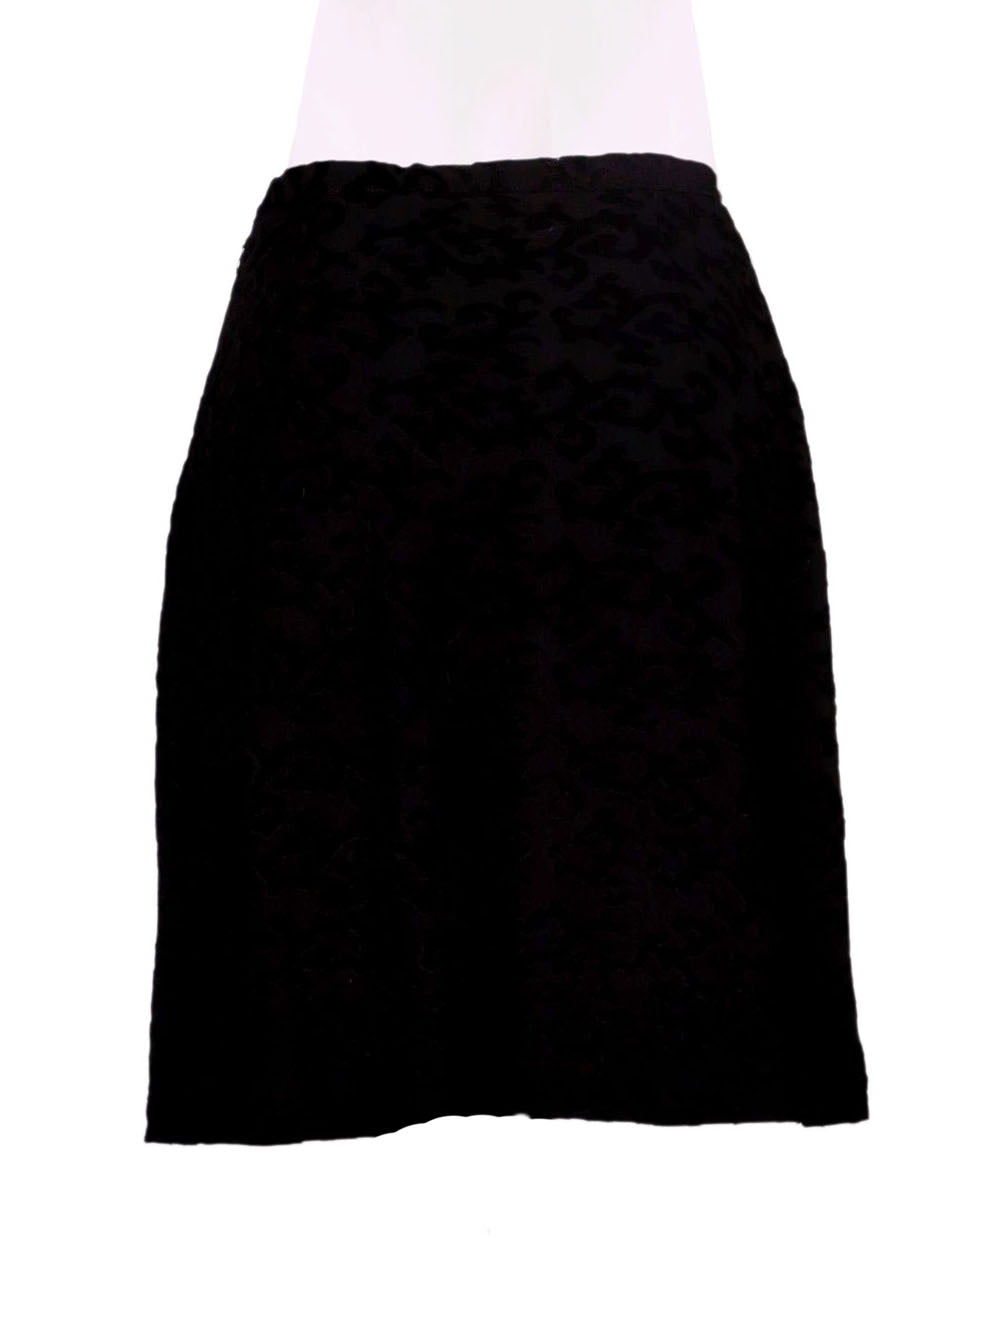 Back photo of Preloved Max&Co. Black Woman's skirt - size 10/M